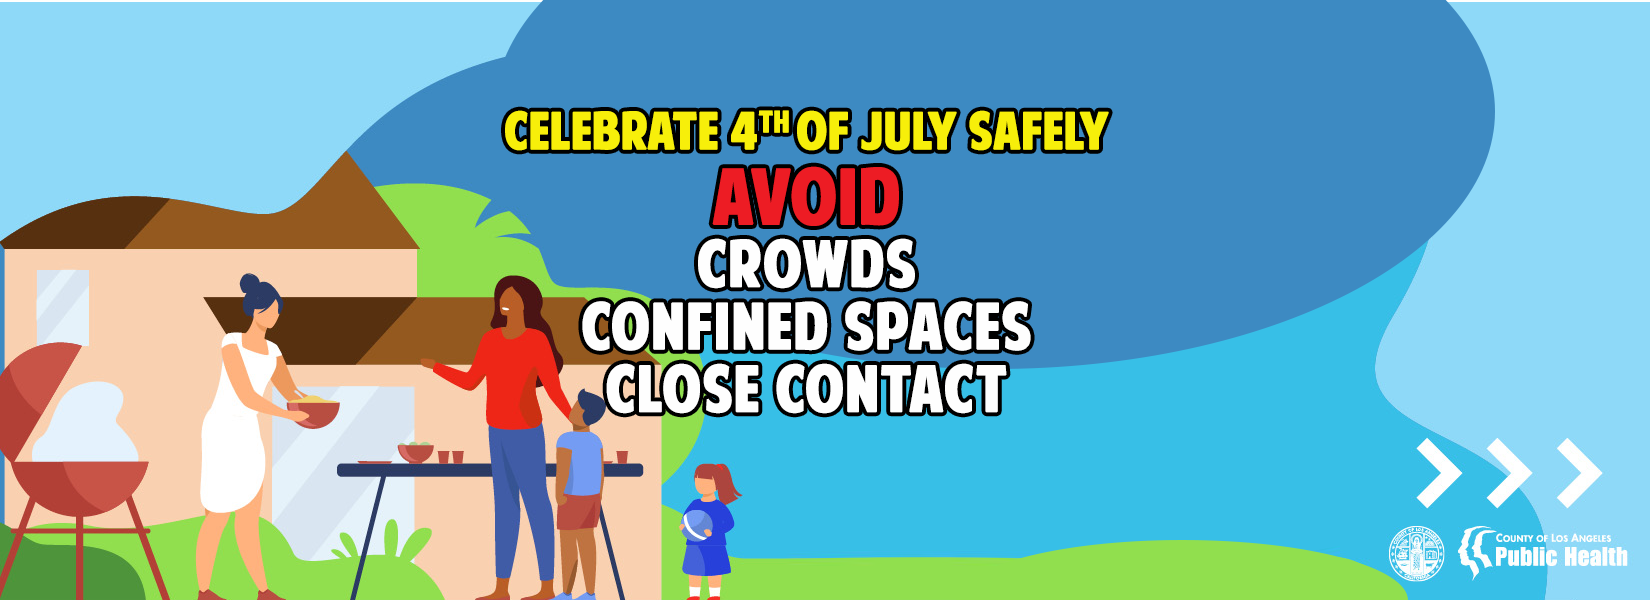 4TH OF JULY SAFETY